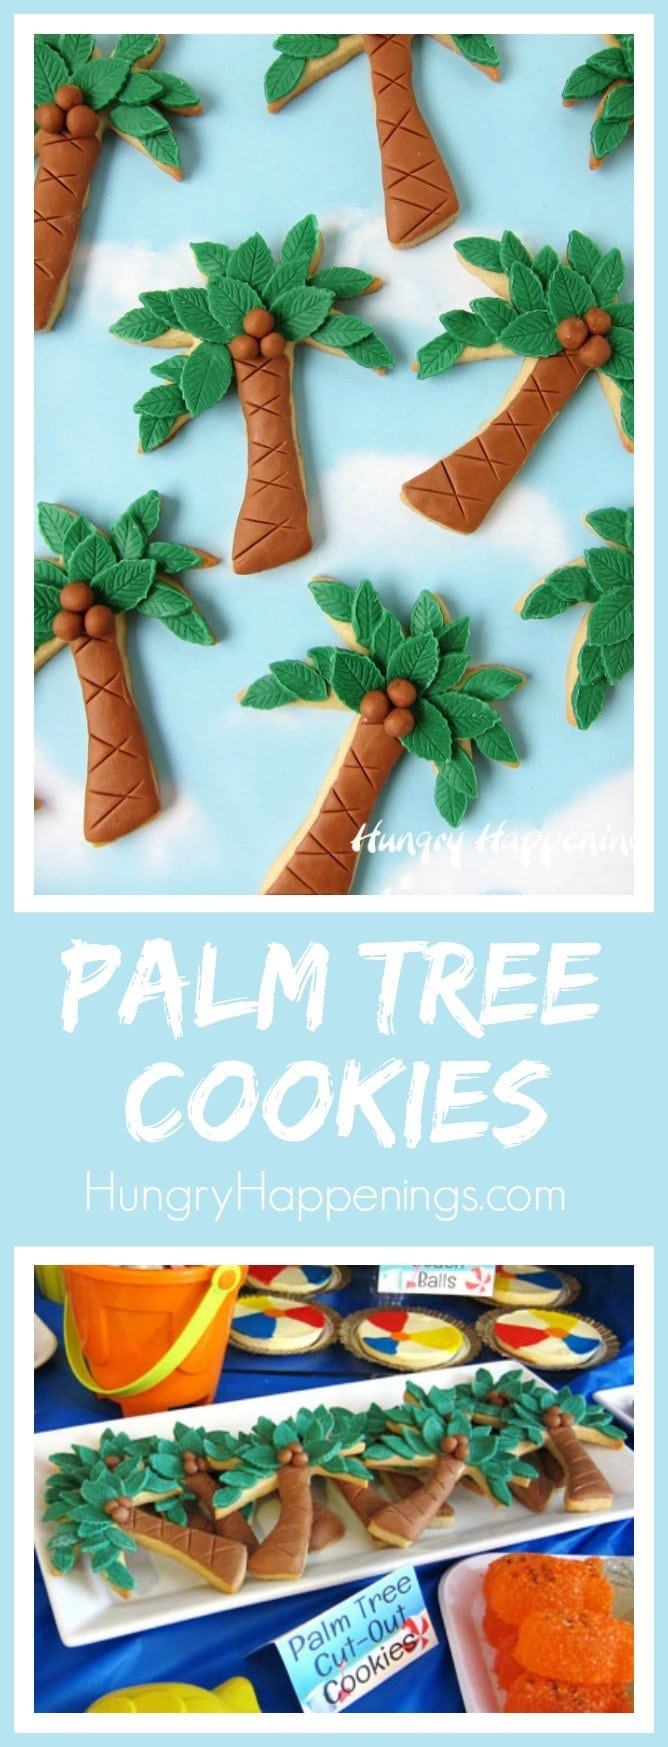 Add chocolate coconuts to your palm tree cookies for your beach themed party or event.